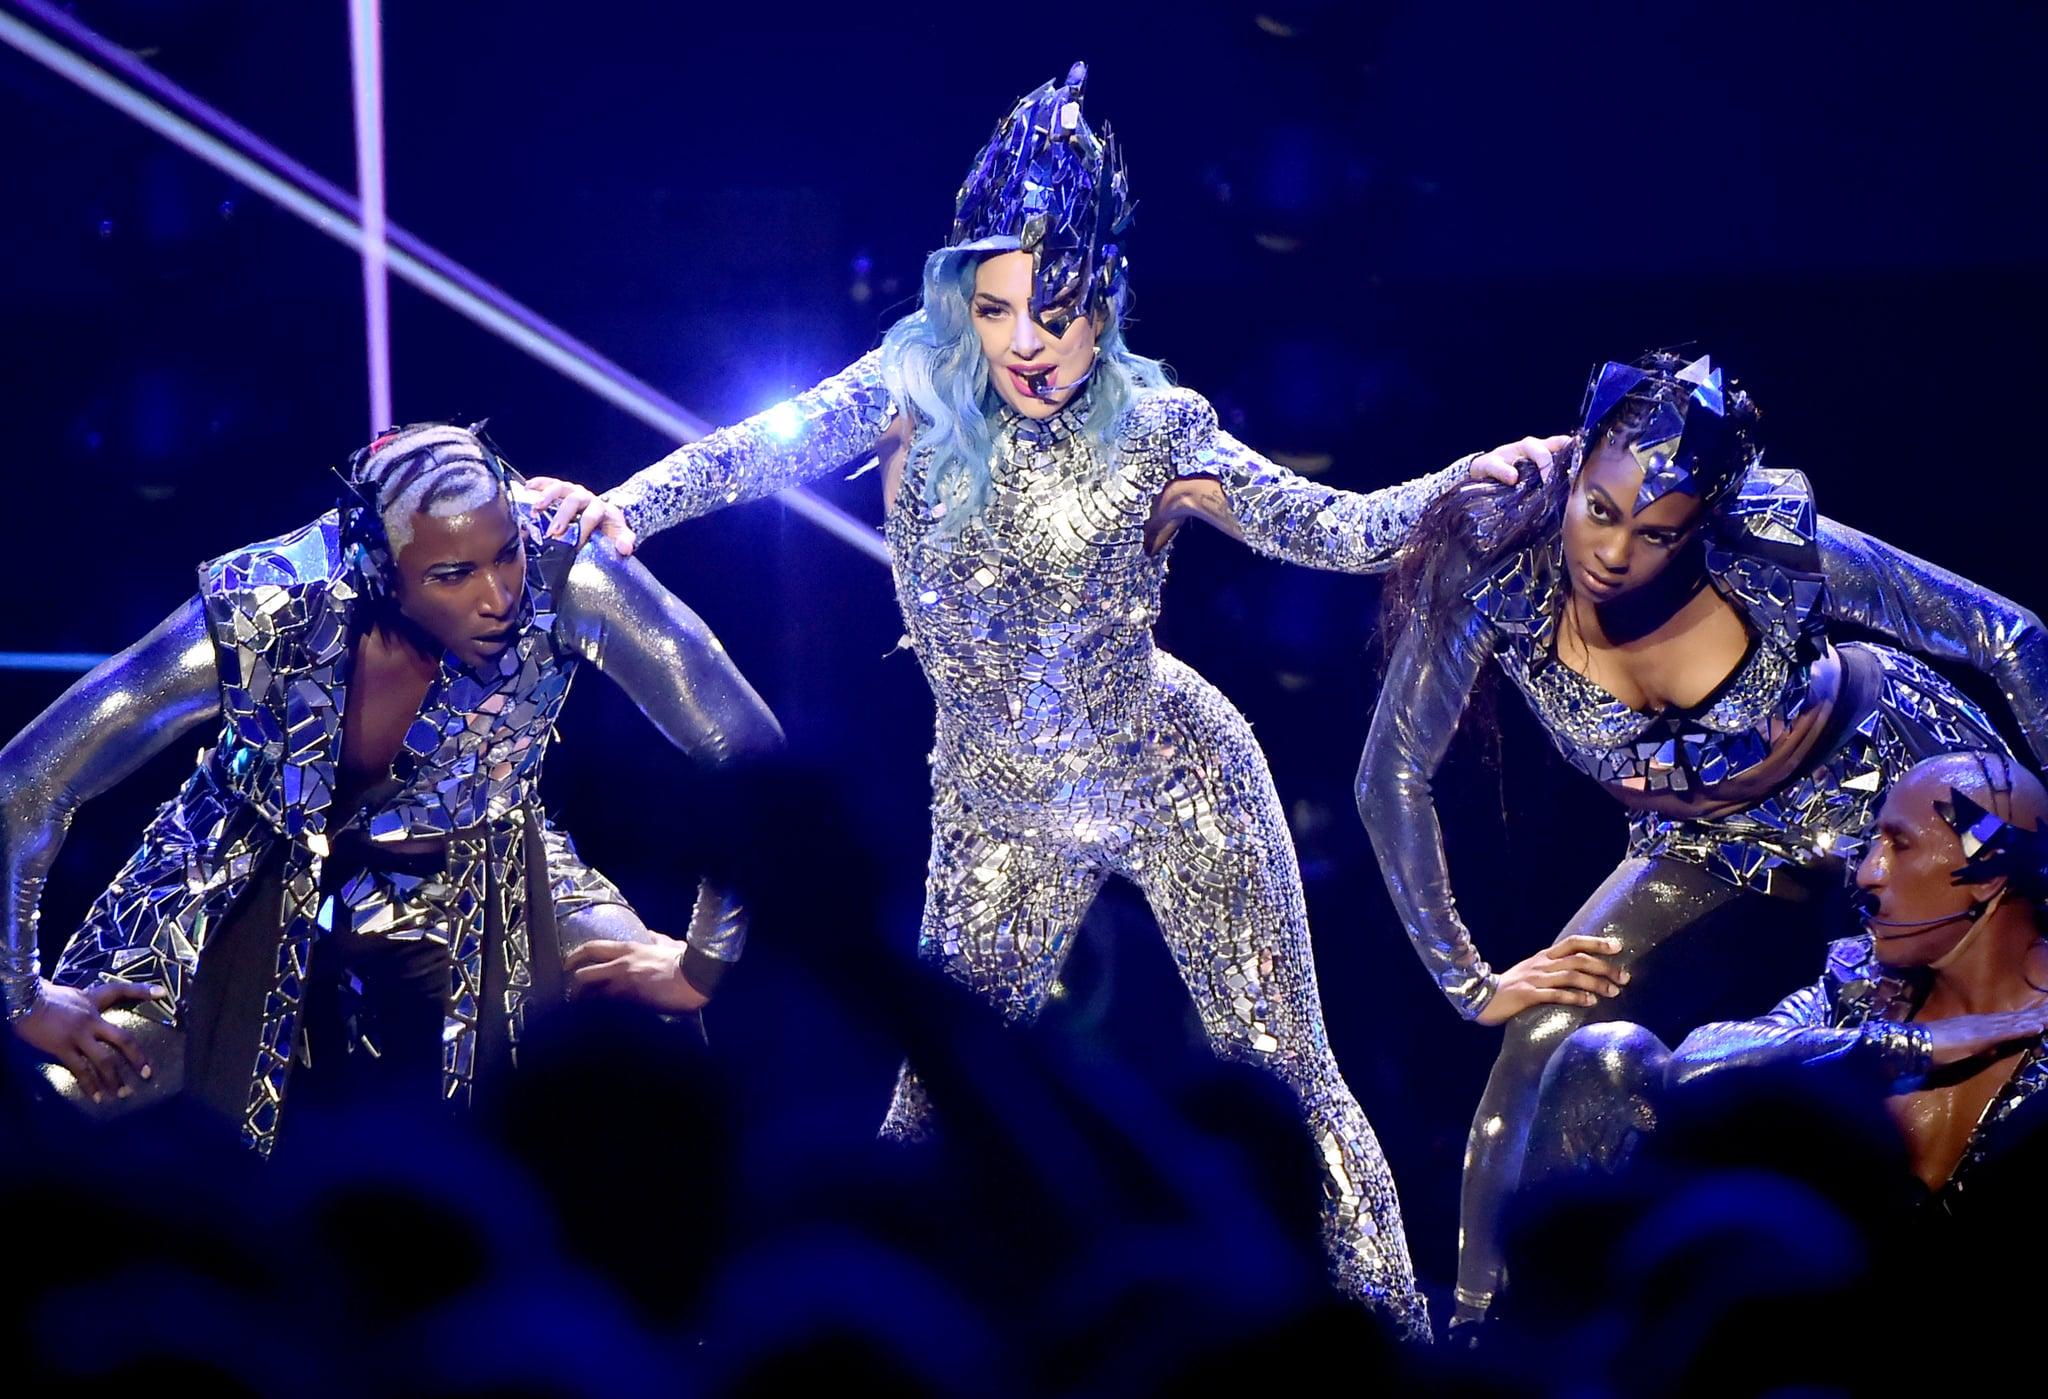 MIAMI, FLORIDA - FEBRUARY 01: Lady Gaga performs onstage during AT&T TV Super Saturday Night at Meridian at Island Gardens on February 01, 2020 in Miami, Florida. (Photo by Theo Wargo/Getty Images for AT&T)